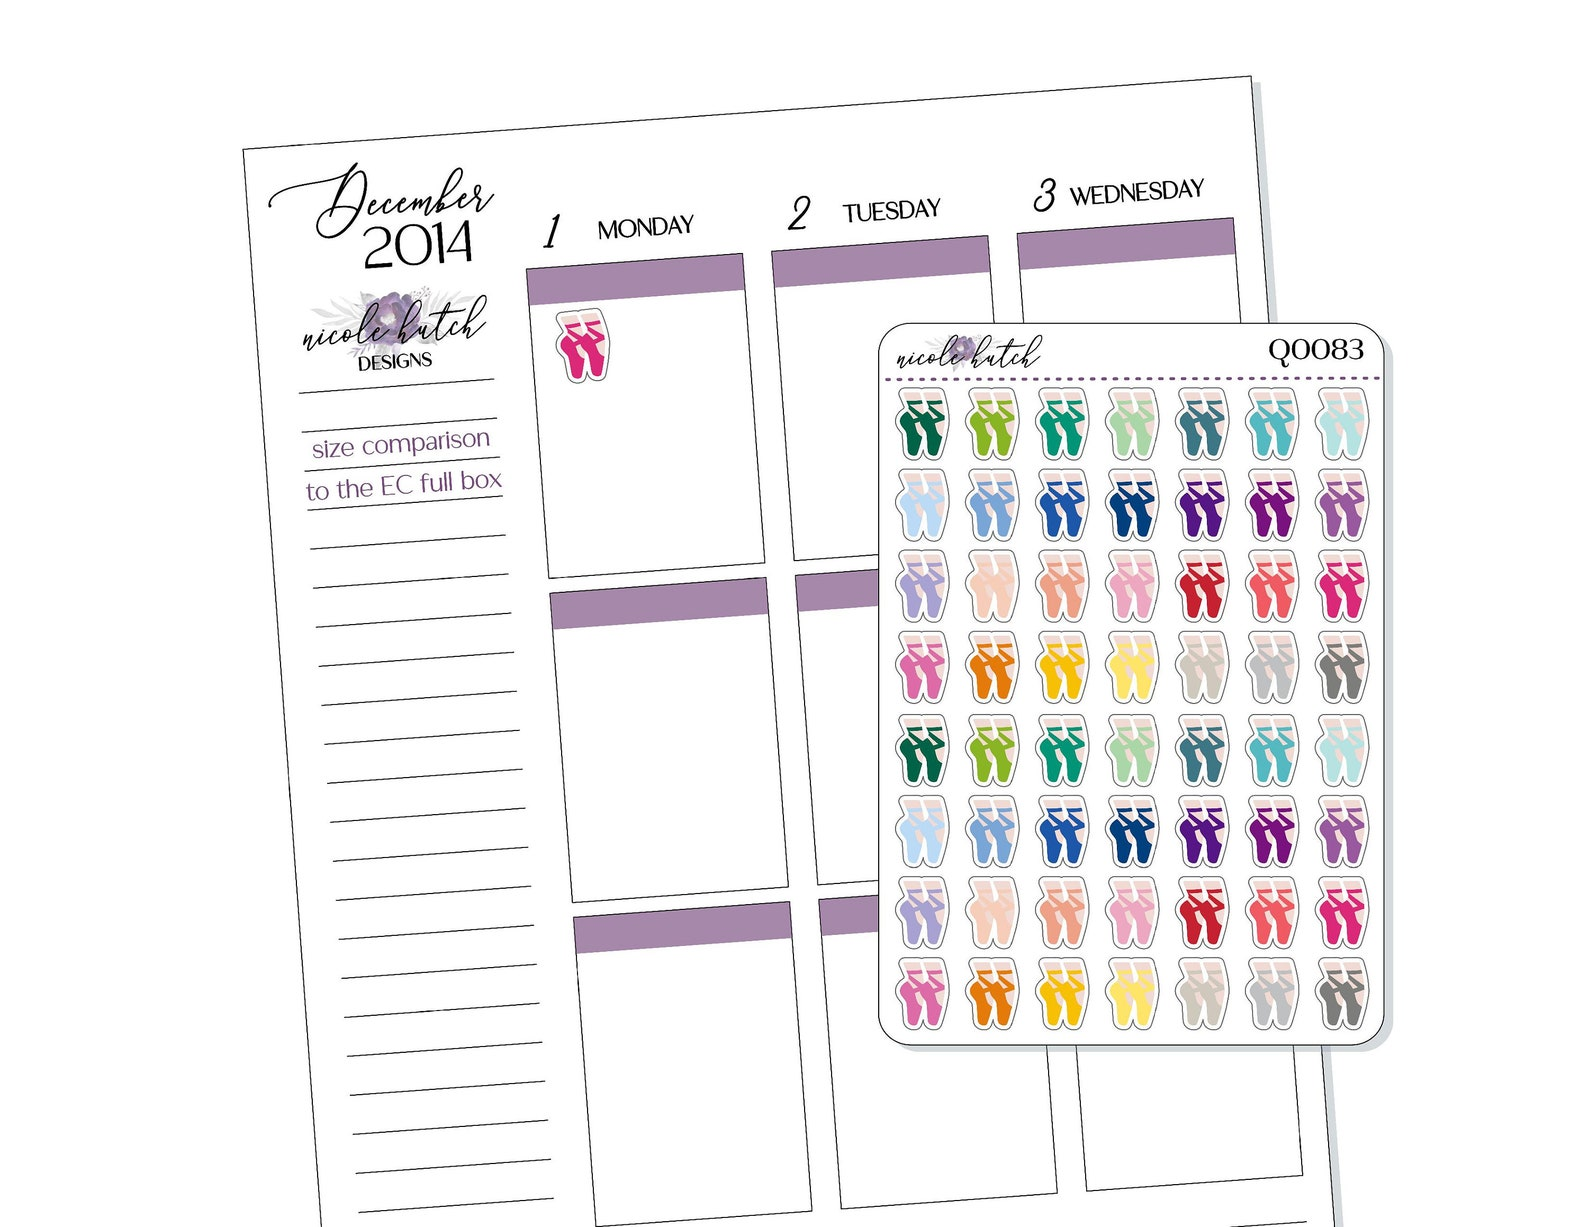 small ballet dancing icon planner stickers - activity - dance - functional stickers - multi color - matte removable [q0083]